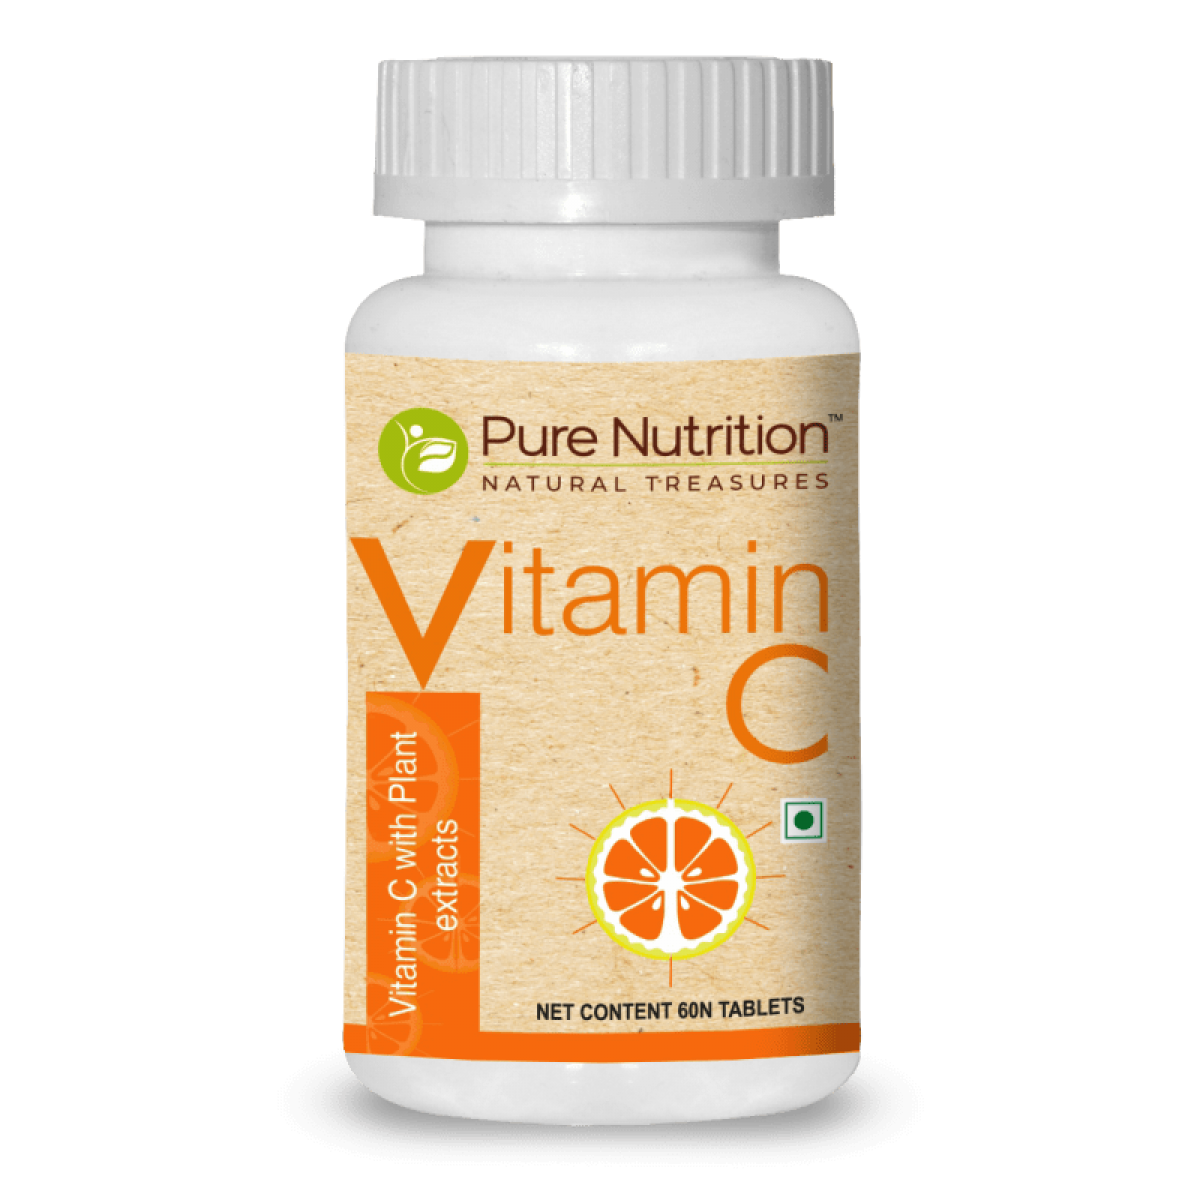 Pure Nutrition Vitamin C Tablet 60S